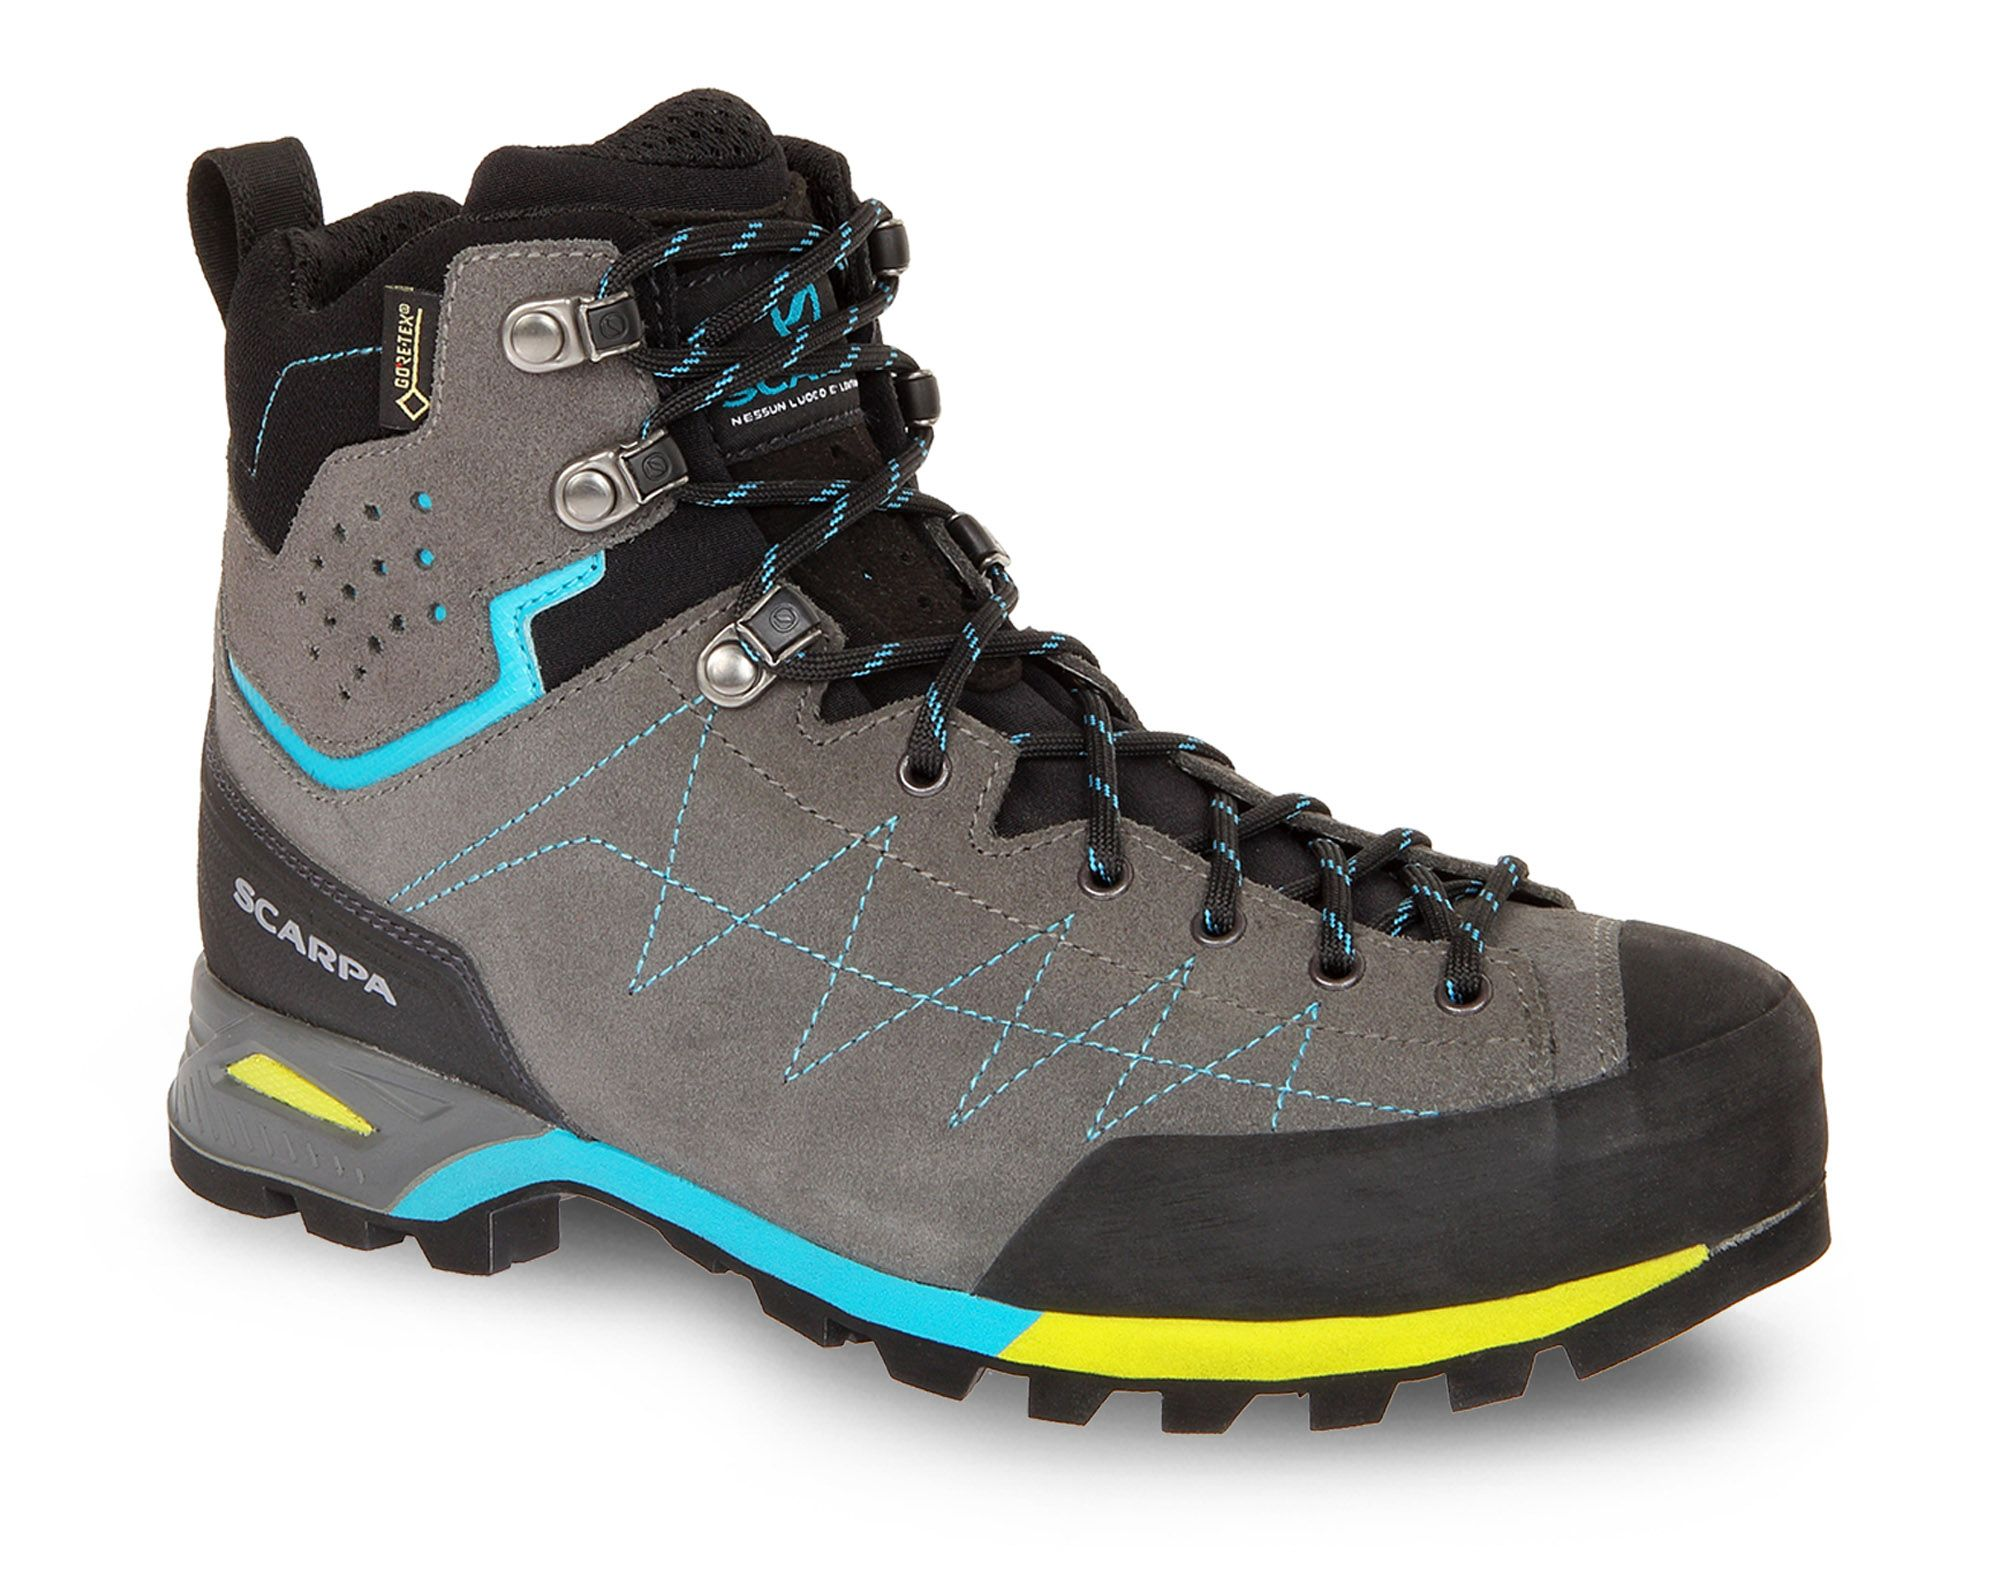 The burly Scarpa Zodiac Plus GTX is our upgrade pick for hiking boots.